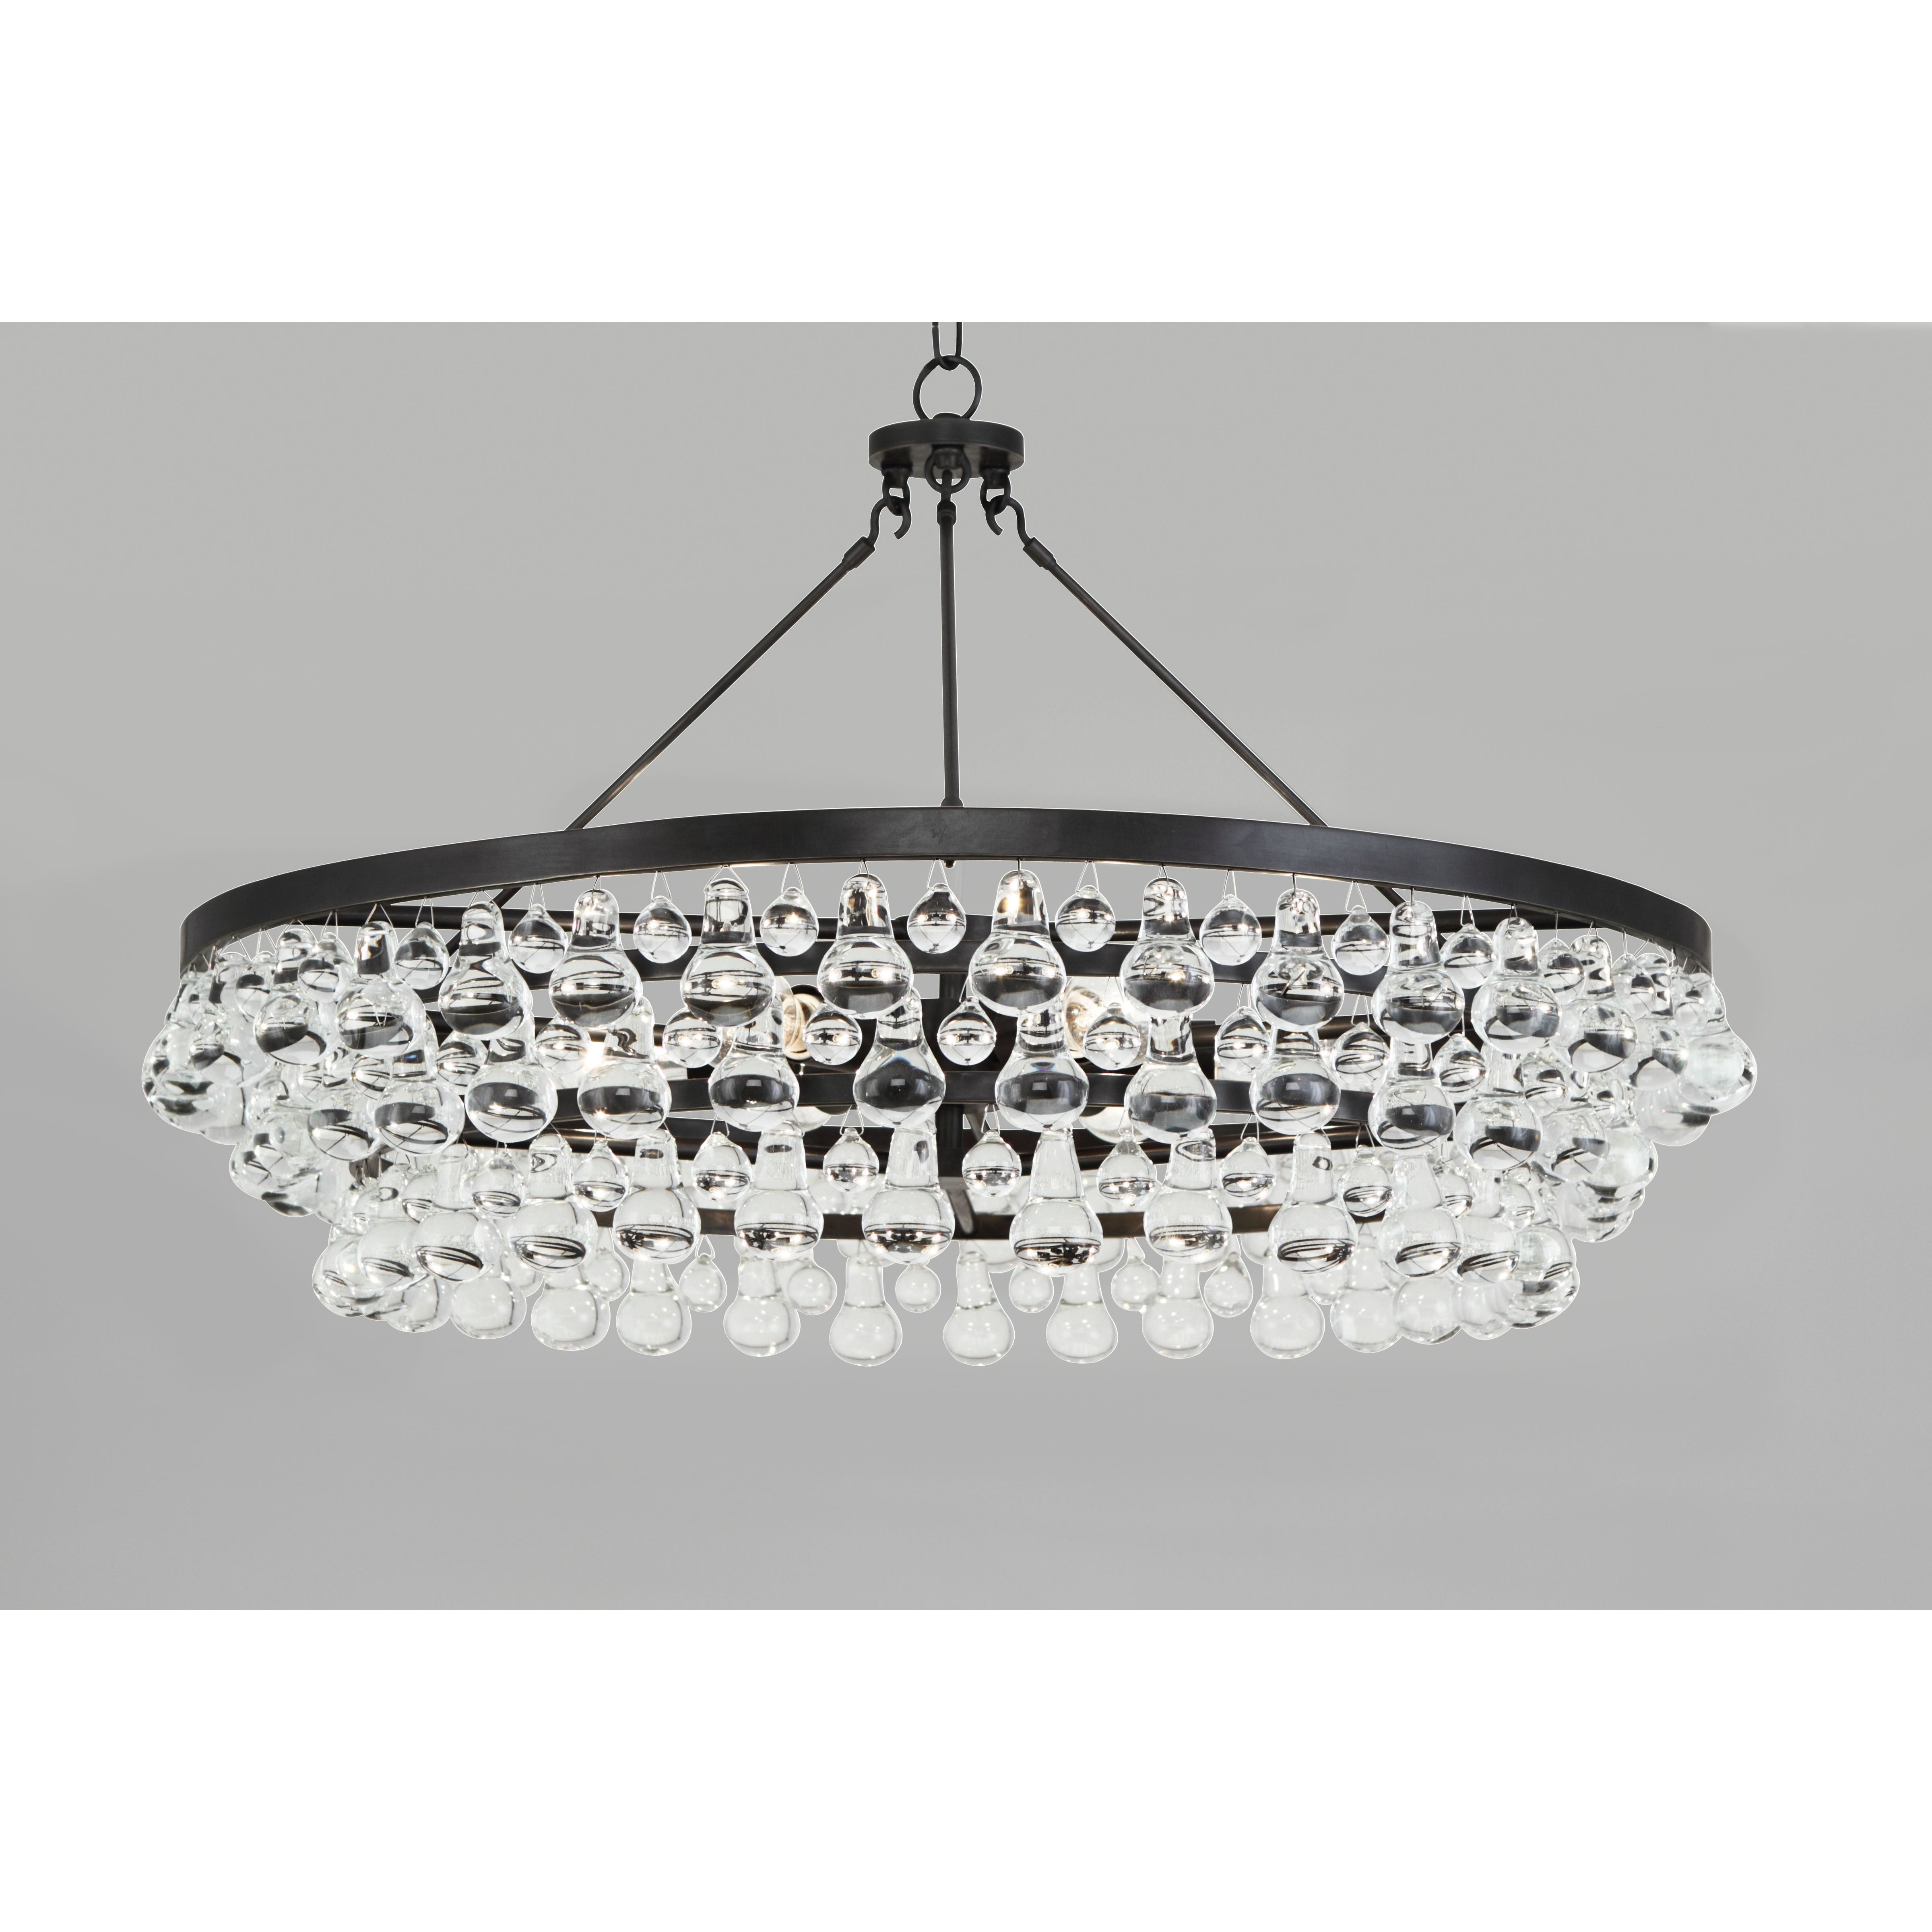 Light : Robert Abbey Bling Chandelier Chandeliers Table Lamps Home Throughout Most Popular Wayfair Chandeliers (View 14 of 15)